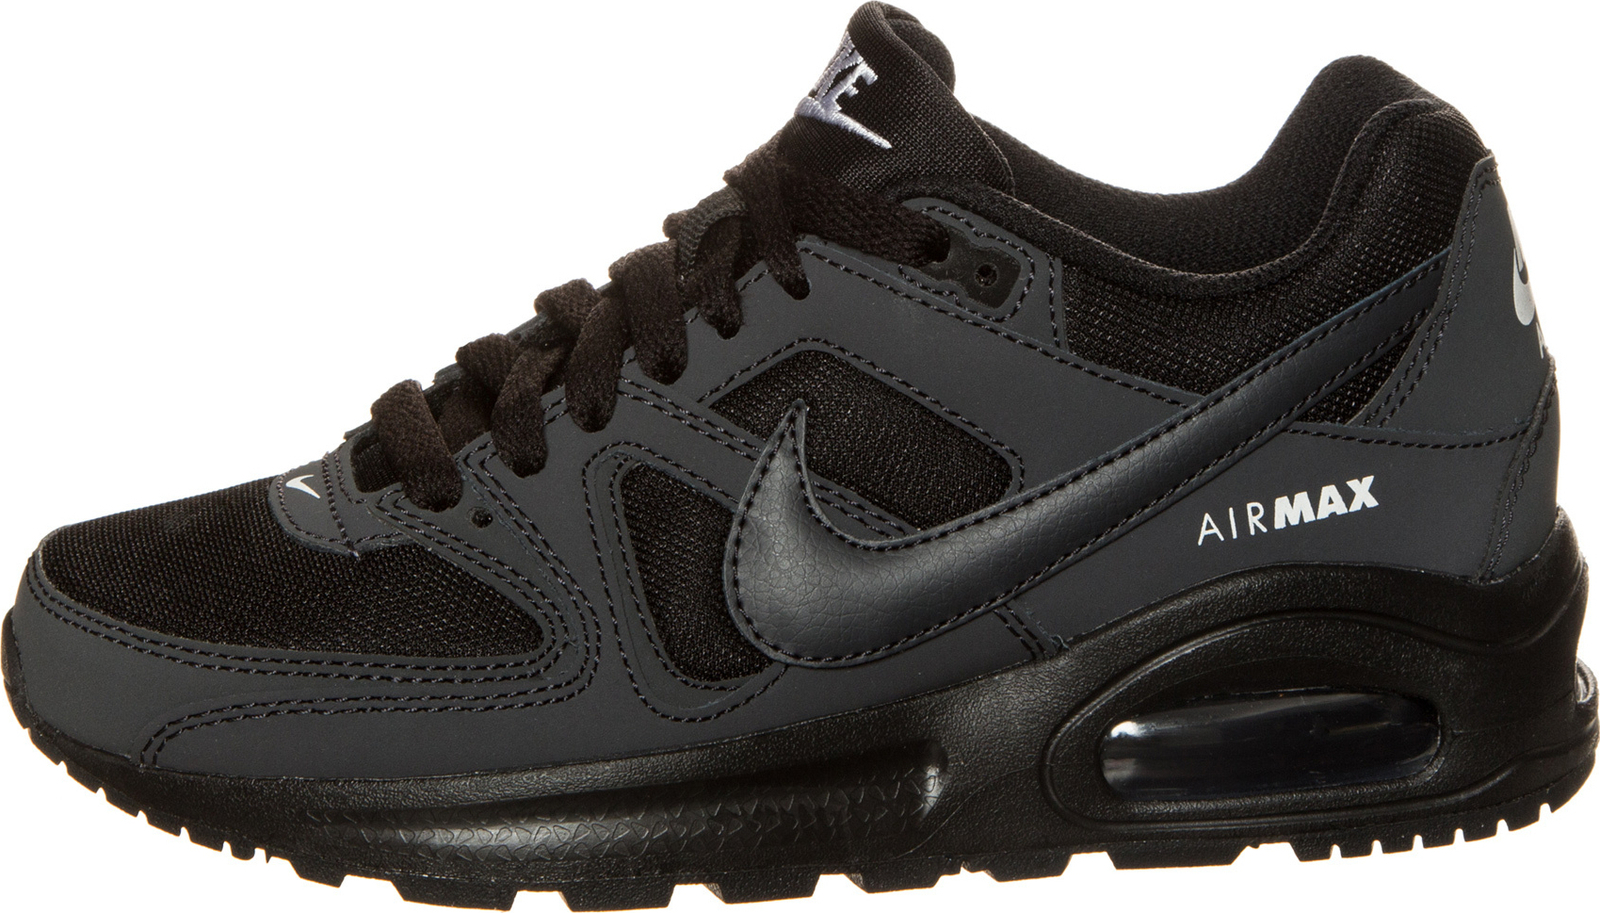 9b5c6bf8bf9 nike air max command - Αθλητικά Παιδικά Παπούτσια - Skroutz.gr